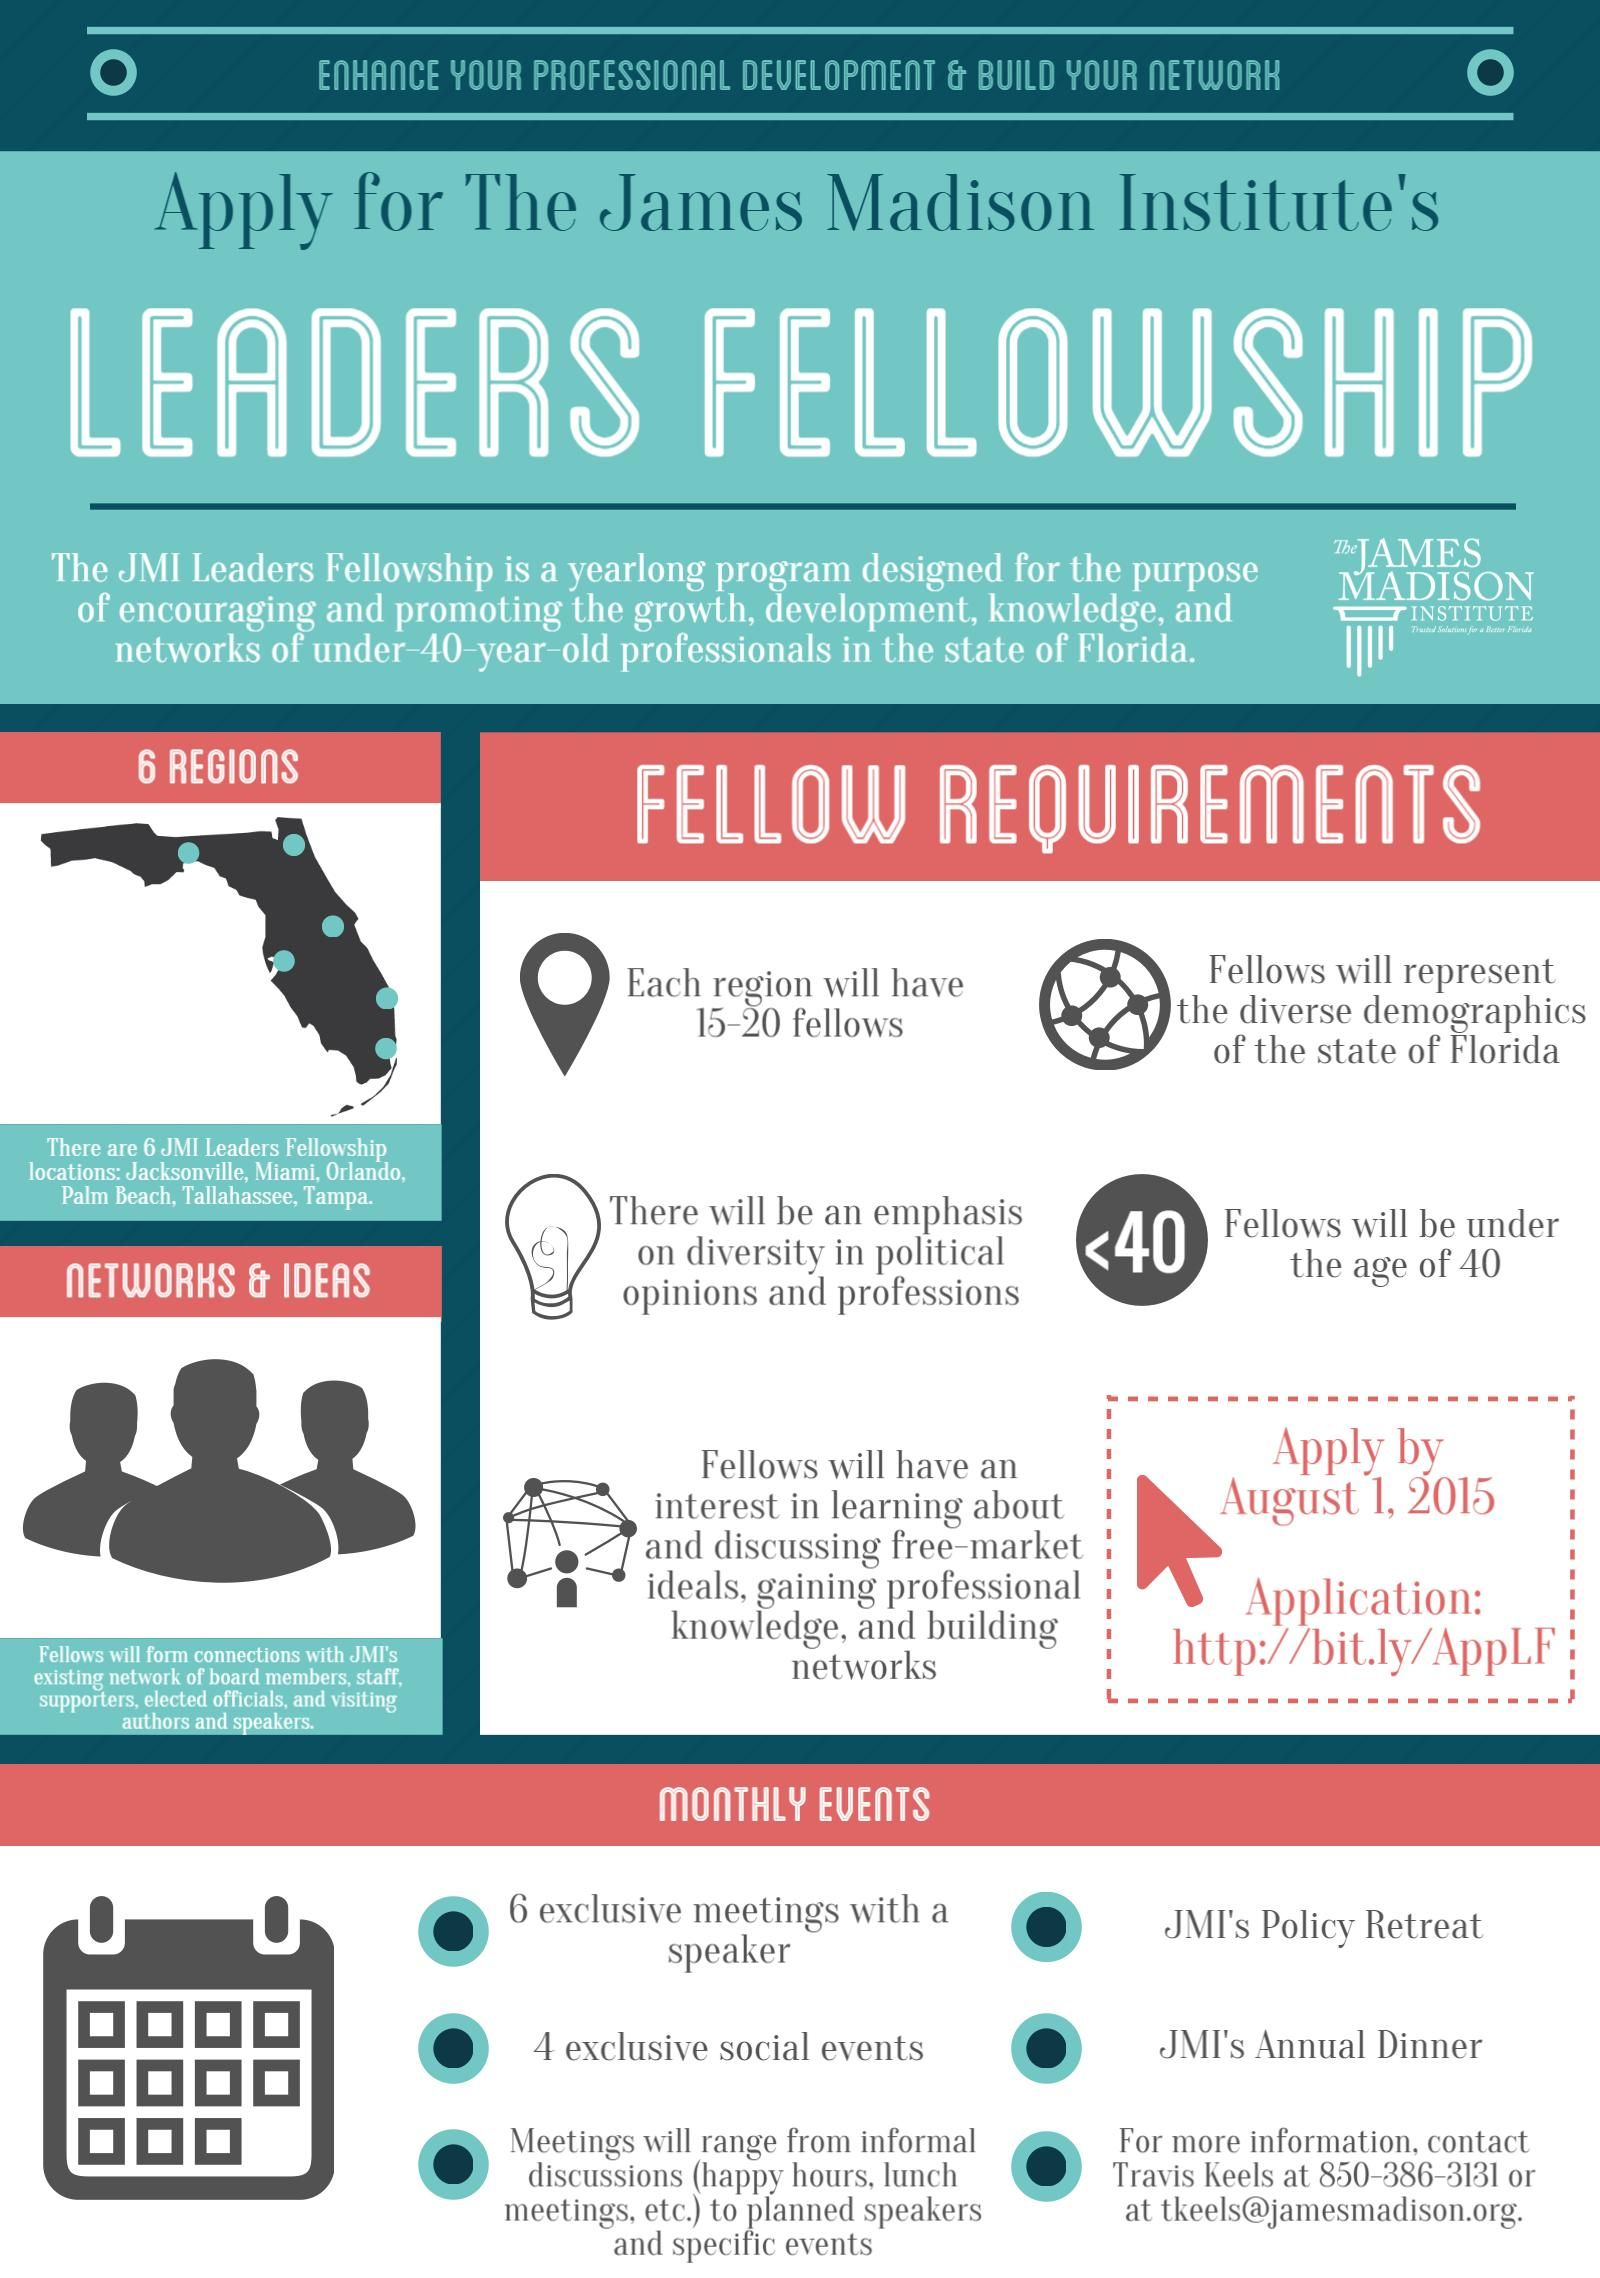 Apply for the JMI Leaders Fellowship today! Deadline: August 1, 2015